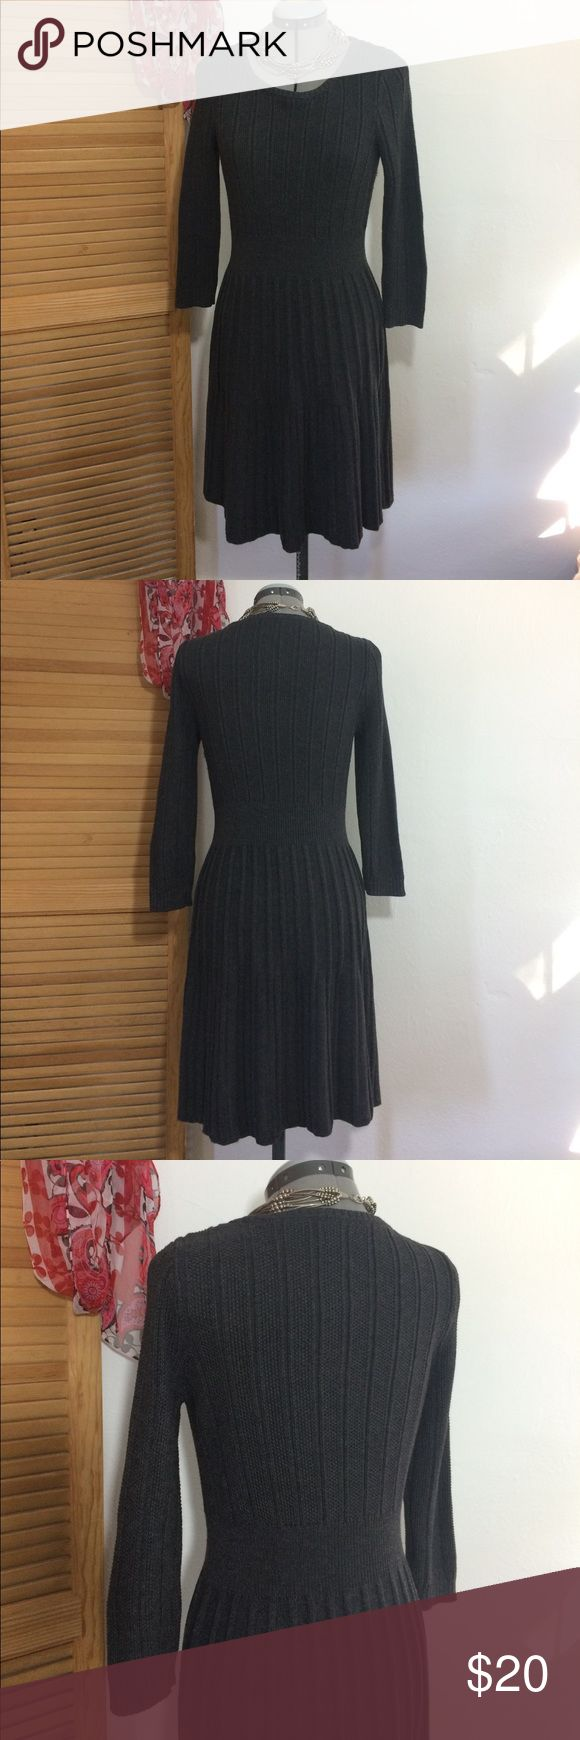 """Calvin Klein Dark Grey knit sweater dress. Sz. M Classic lines and cozy comfort marry in this dark gray sweater dress by Calvin Klein. Size medium. Plenty of stretch. Shoulder to arm cuff 21"""" which for most will be 3/4 sleeve. Waist to hem 22"""". Can be worn alone or under jacket/blazer. Flats/boots/heels. Matches with any color so options are endless. Will quickly become a wardrobe favorite due to its comfort, style and versatility.💐 Calvin Klein Dresses Midi"""